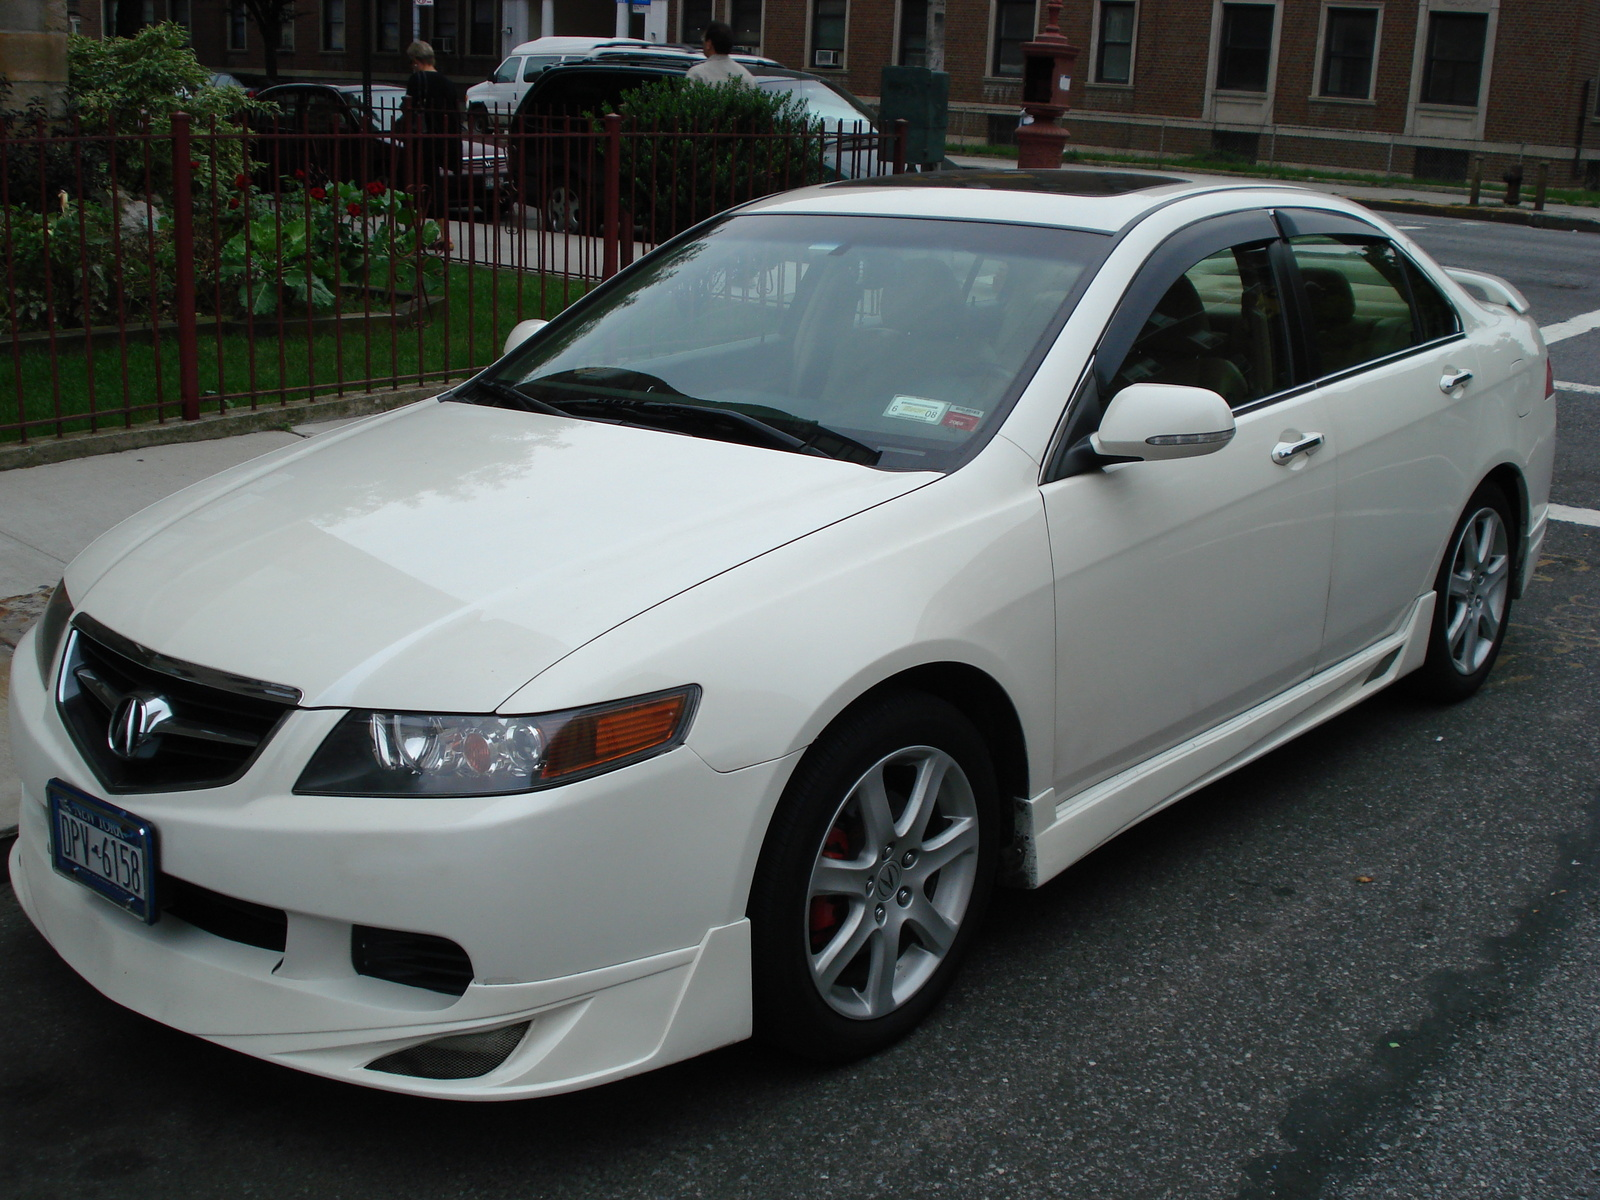 2004 Acura TSX - Information and photos - ZombieDrive